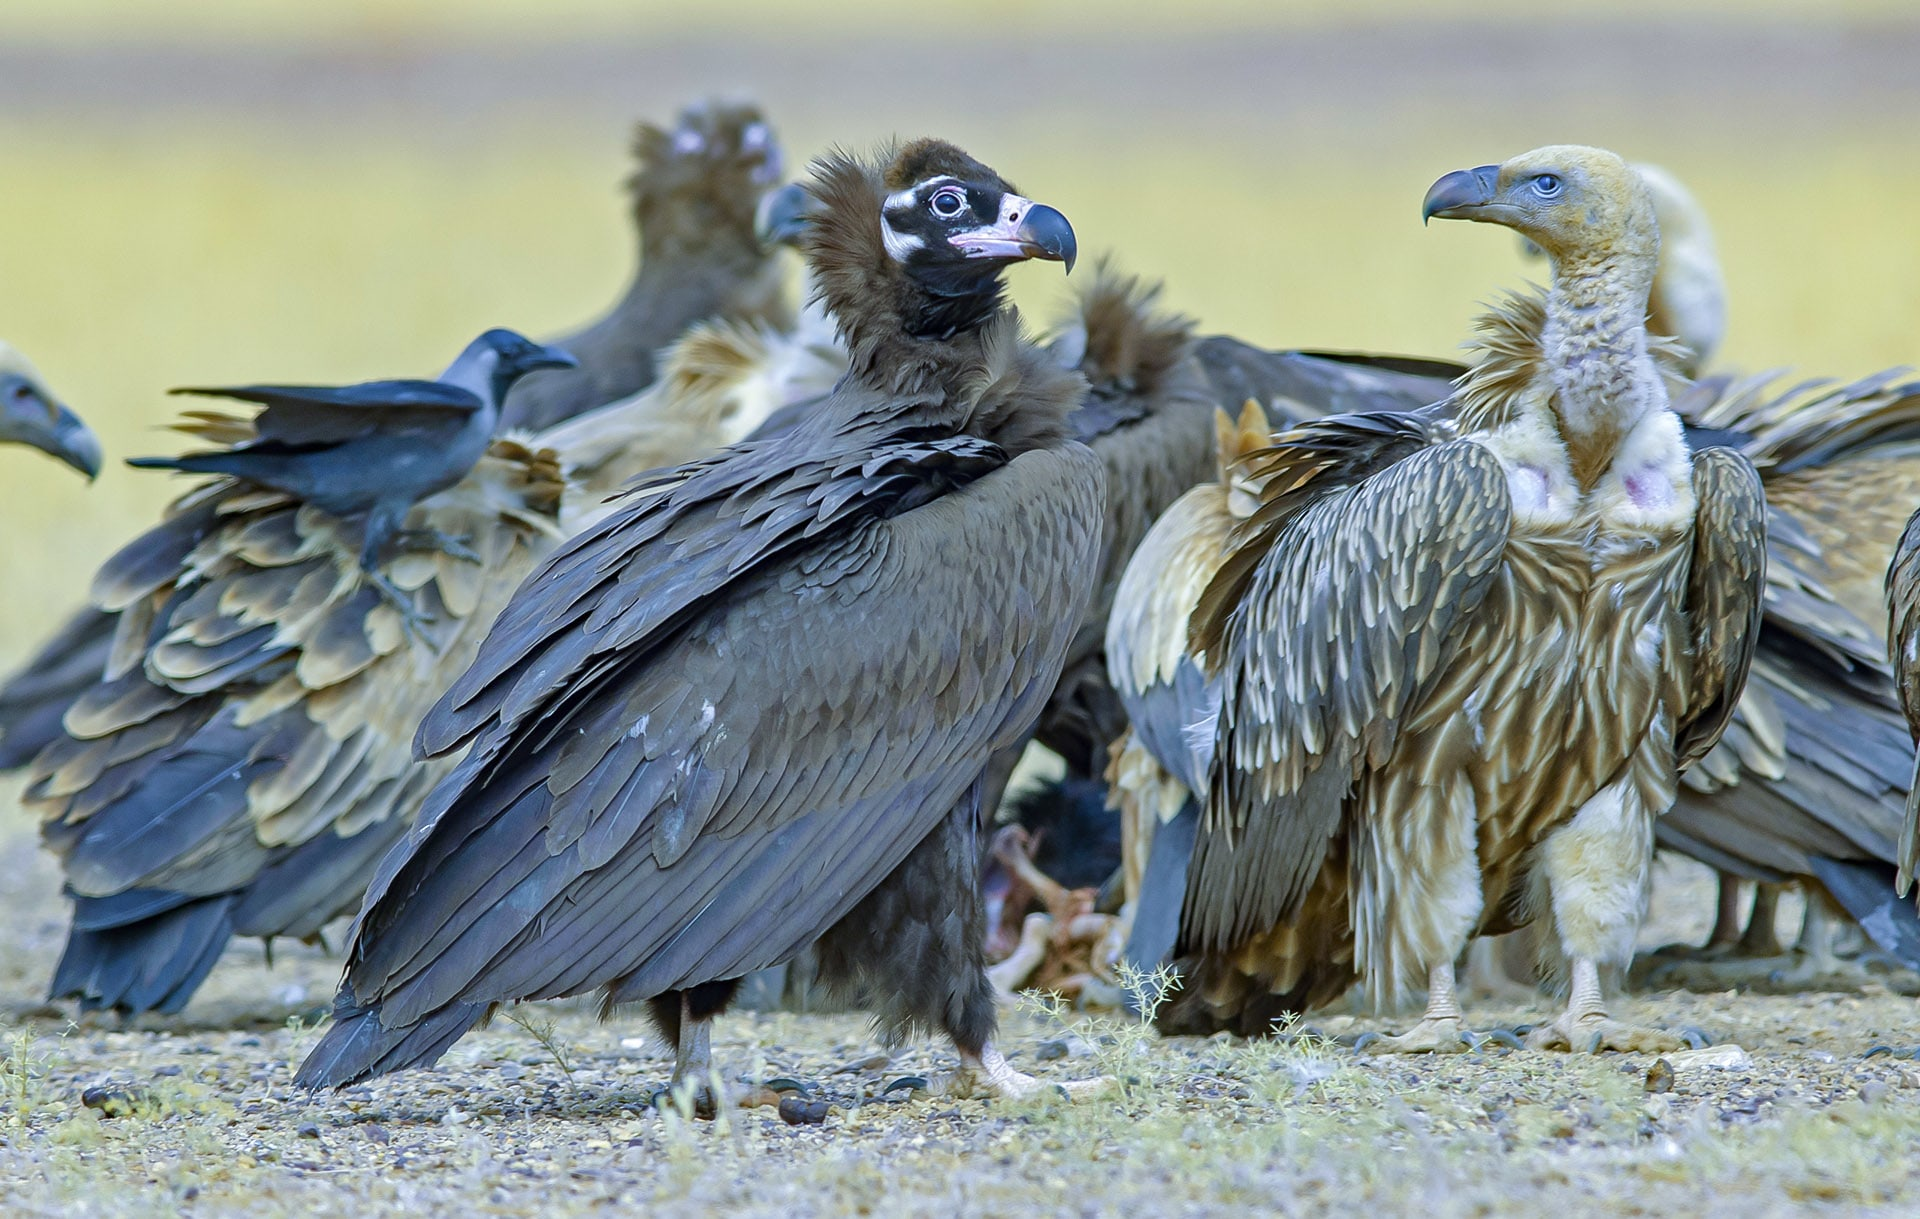 Both the Himalayan griffon (light brown) and cinereous vulture (dark brown) are winter visitors to Desert National Park. Cinereous vultures (Aegypius monachus) are the largest species of vulture with a huge wingspan that can measure up to 2.8 m. Himalayan griffons (Gyps hymalayensis ) are the second-largest vulture species. They can be seen in this park and in other parts of Rajasthan, sometimes together, feeding on the discarded carrion of livestock. Photo: Dhritiman Mukherjee